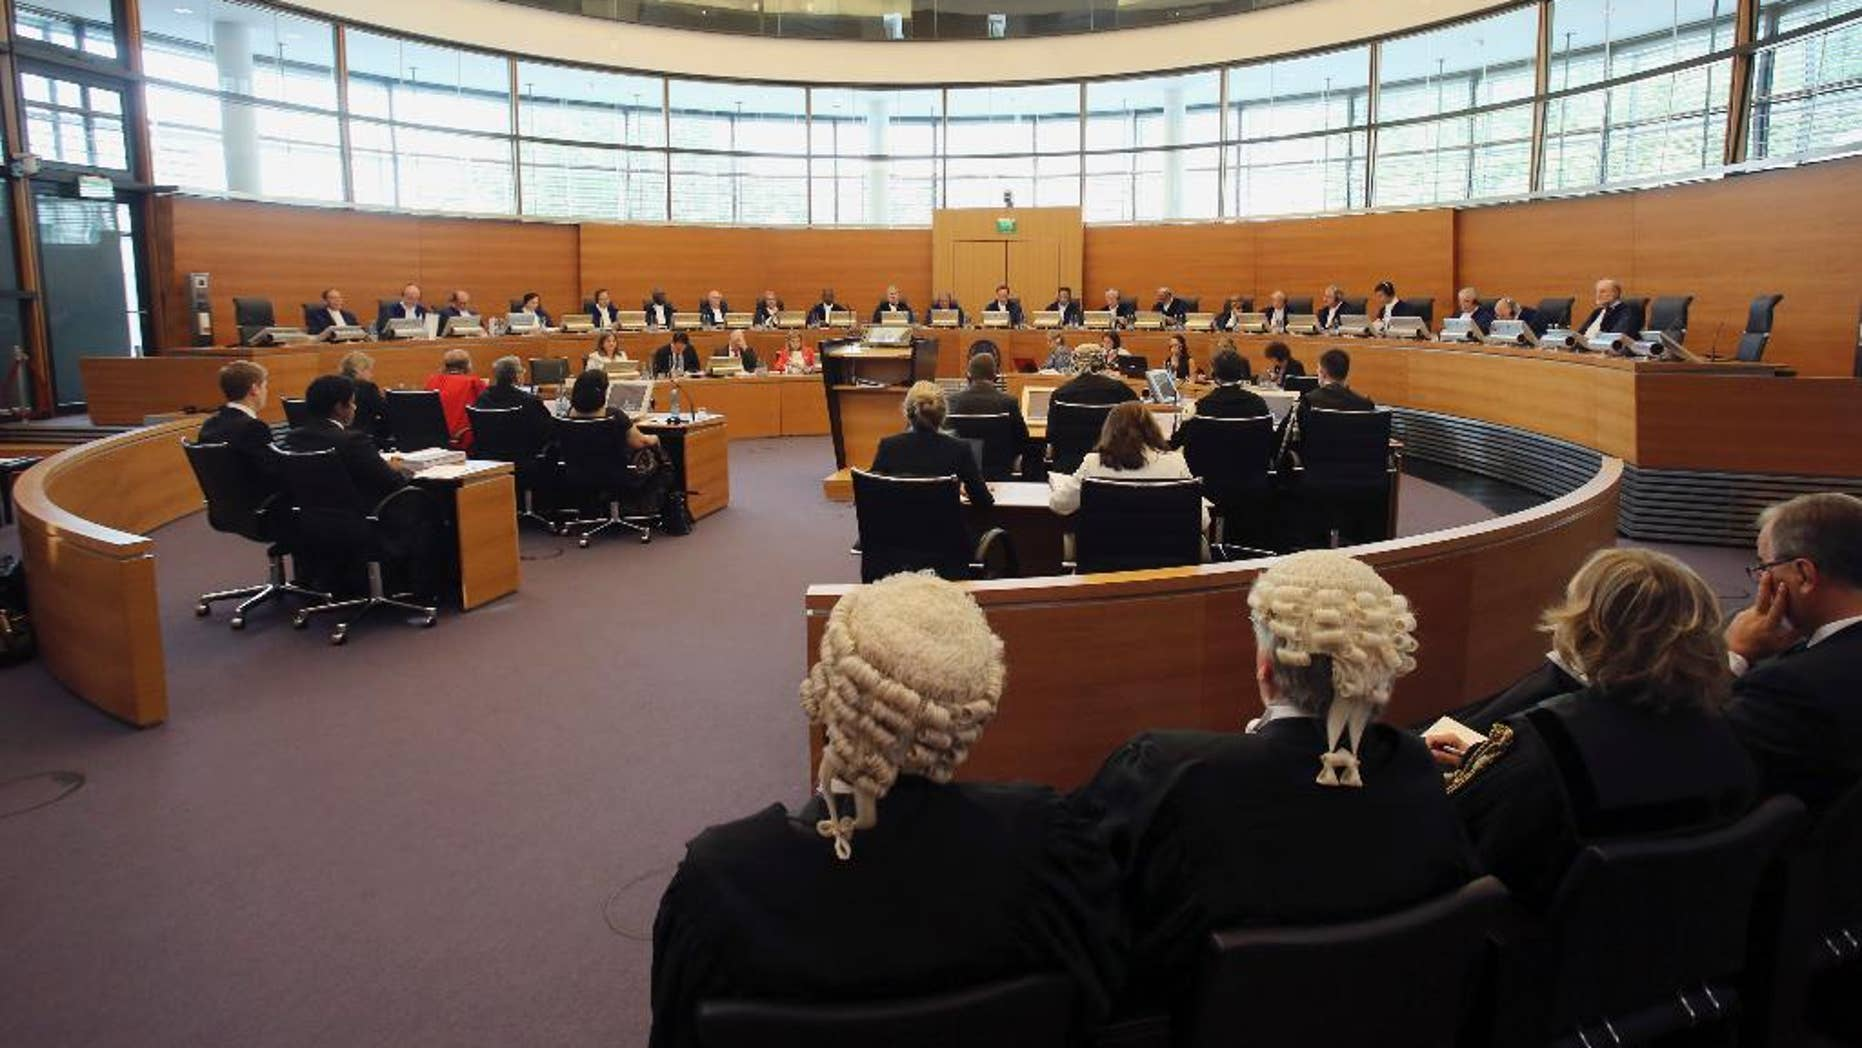 """FILE - In this Aug. 10, 2015 file picture the UN mandated tribunal and the delegations of India, left, and Italy, right, are pictured during the first public hearing on the request for provisional measures in the """"Enrica Lexie"""" incident at the International Tribunal for the Law of the Sea in Hamburg, northern Germany.  The tribunal has ordered India to put on hold legal proceedings against two Italian marines accused of killing two Indian fishermen in 2012. The tribunal on Monday Aug. 24, 2015  ordered both sides to suspend """"all court proceedings"""" and refrain from initiating new ones pending an arbitration decision. (AP Photo/Focke Strangmann,file)"""